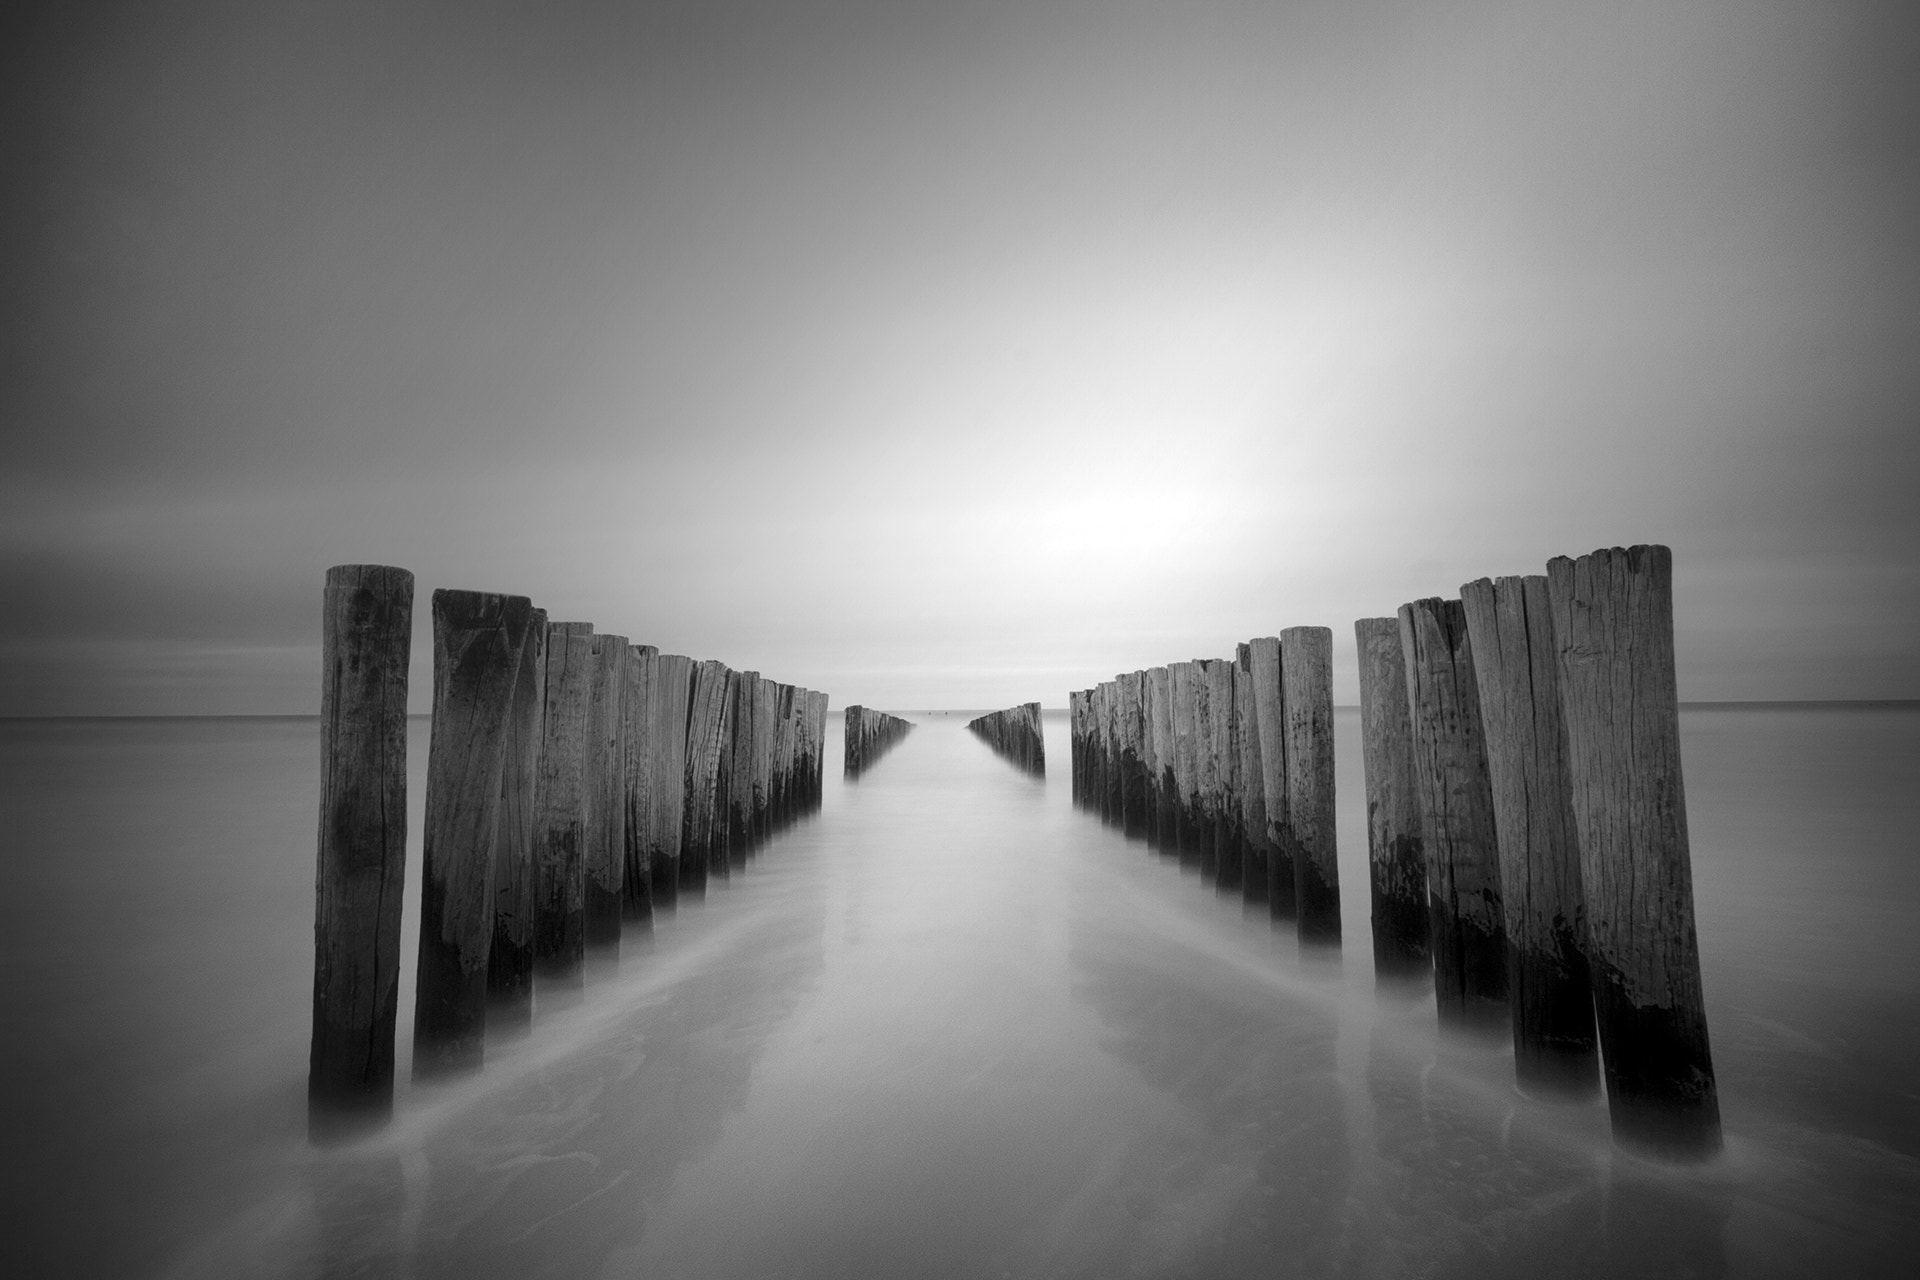 Photograph Groyes Zeeland Netherlands by Kees Smans on 500px